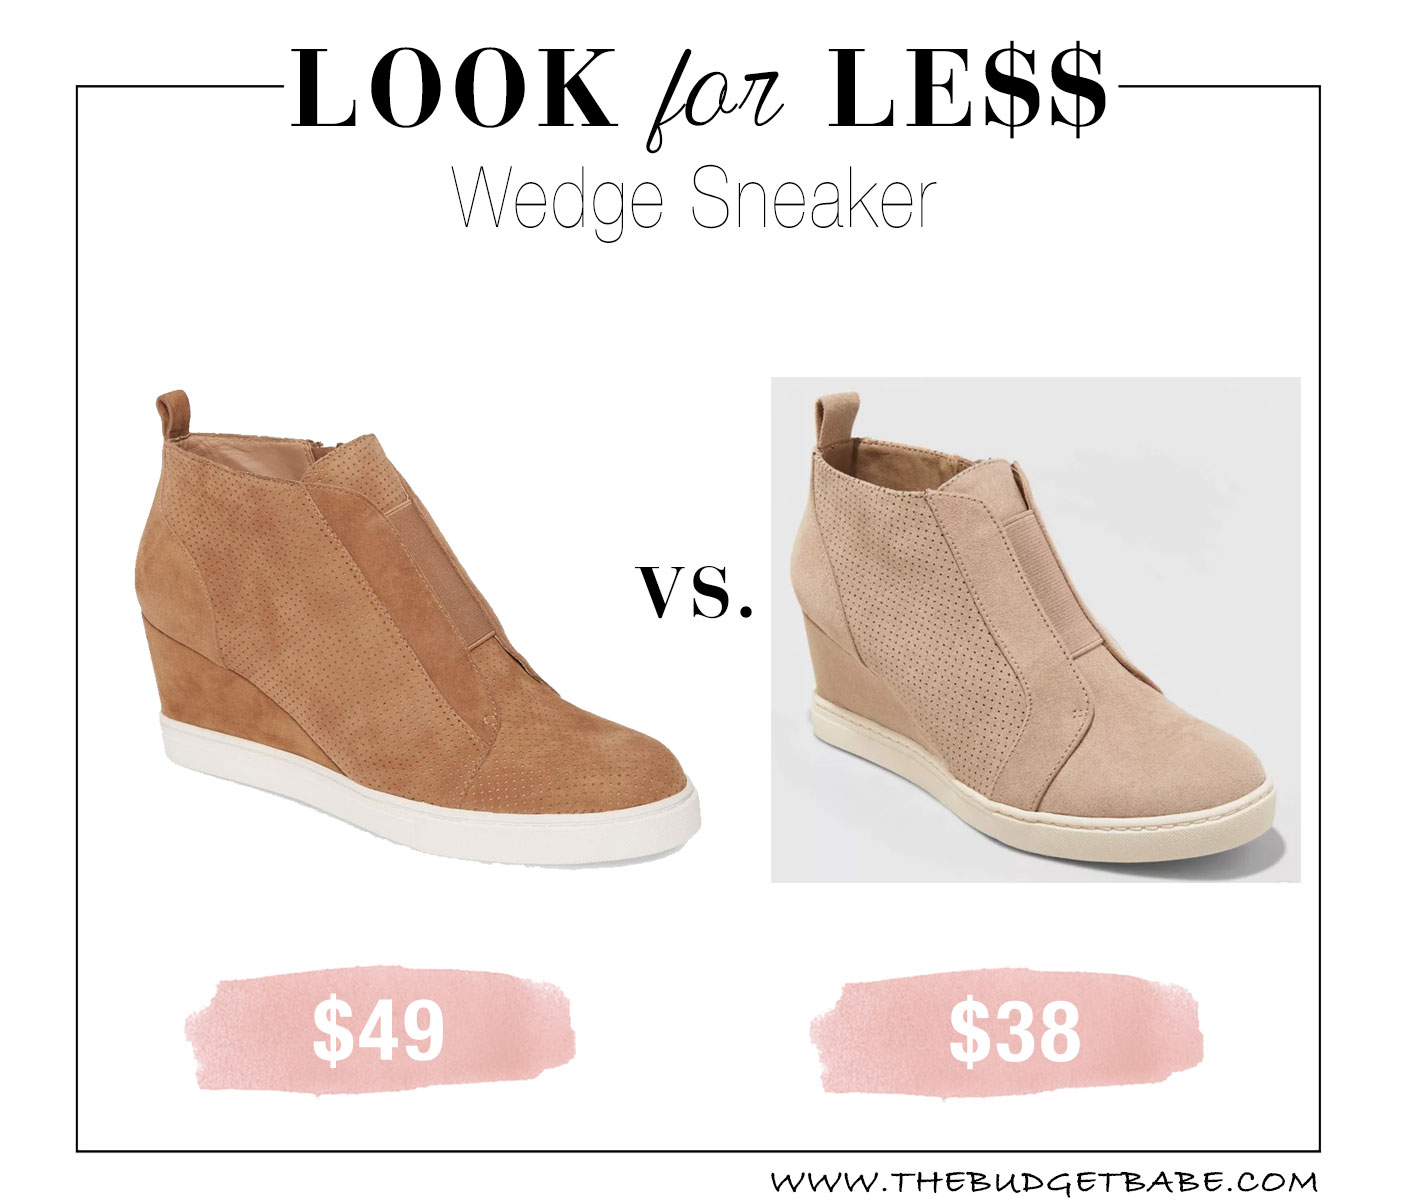 Linea Paolo sneaker wedge look for less